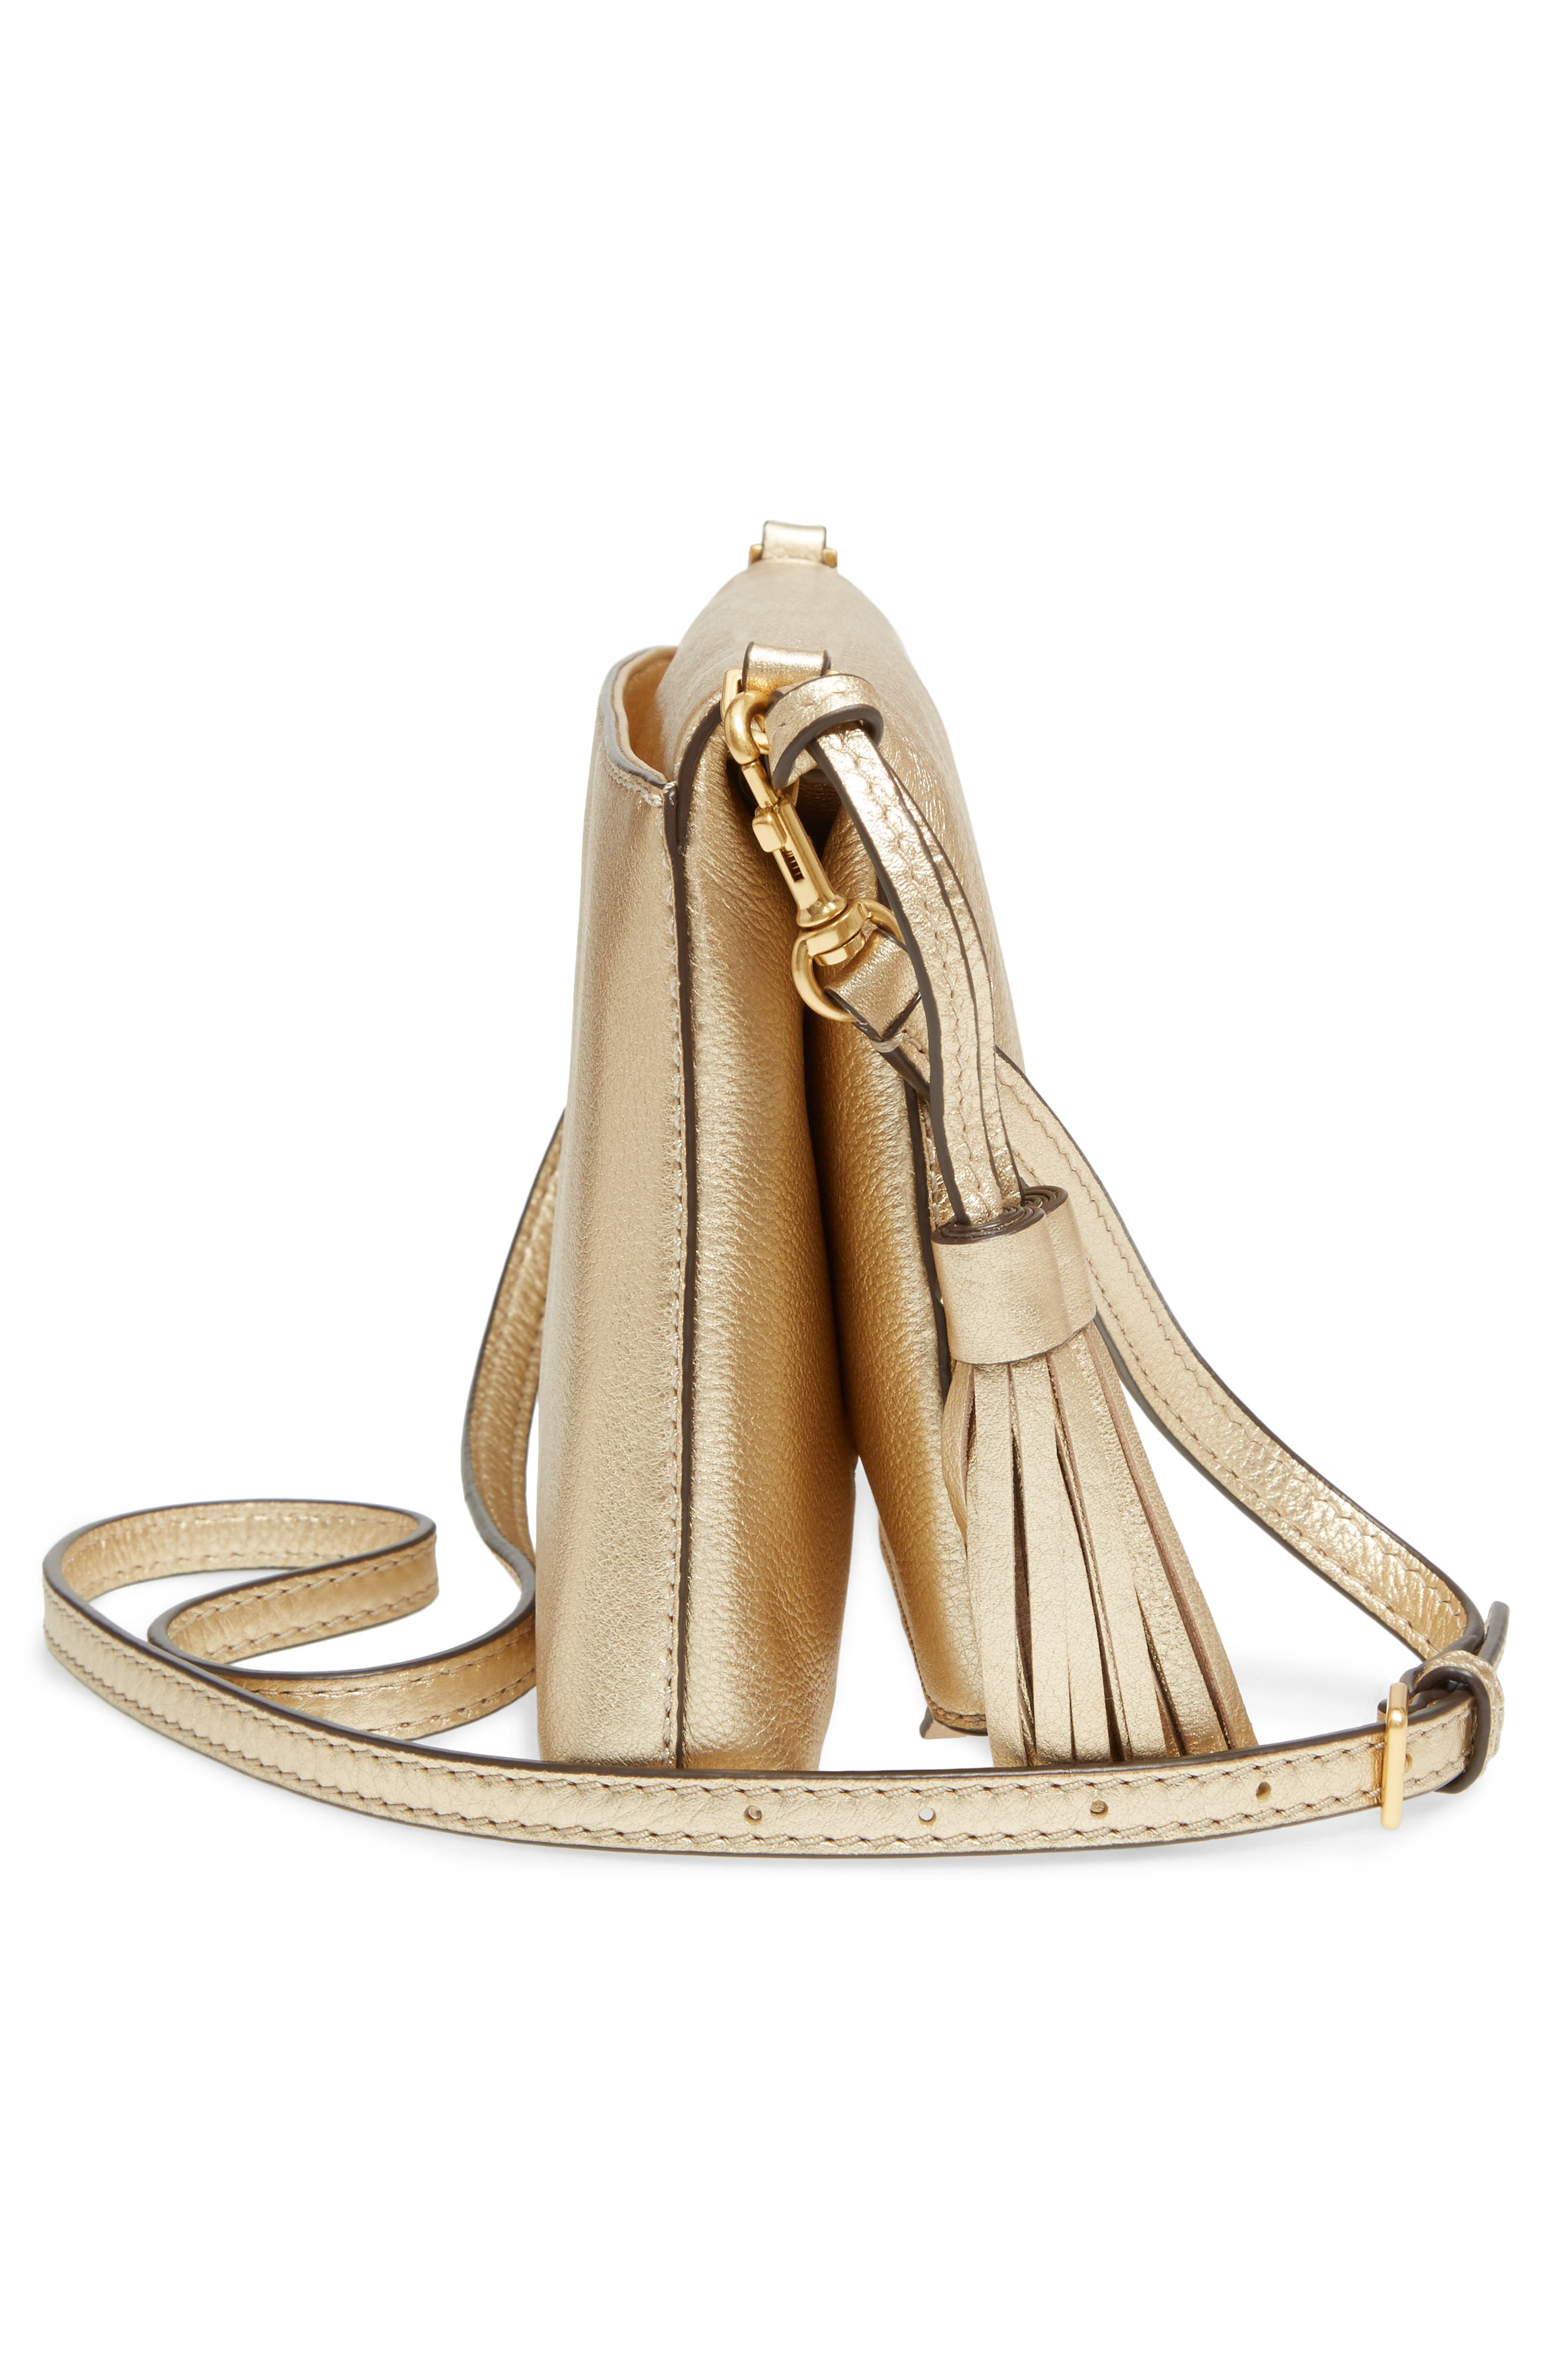 McGraw Metallic Leather Crossbody Bag,                             Alternate thumbnail 5, color,                             Gold